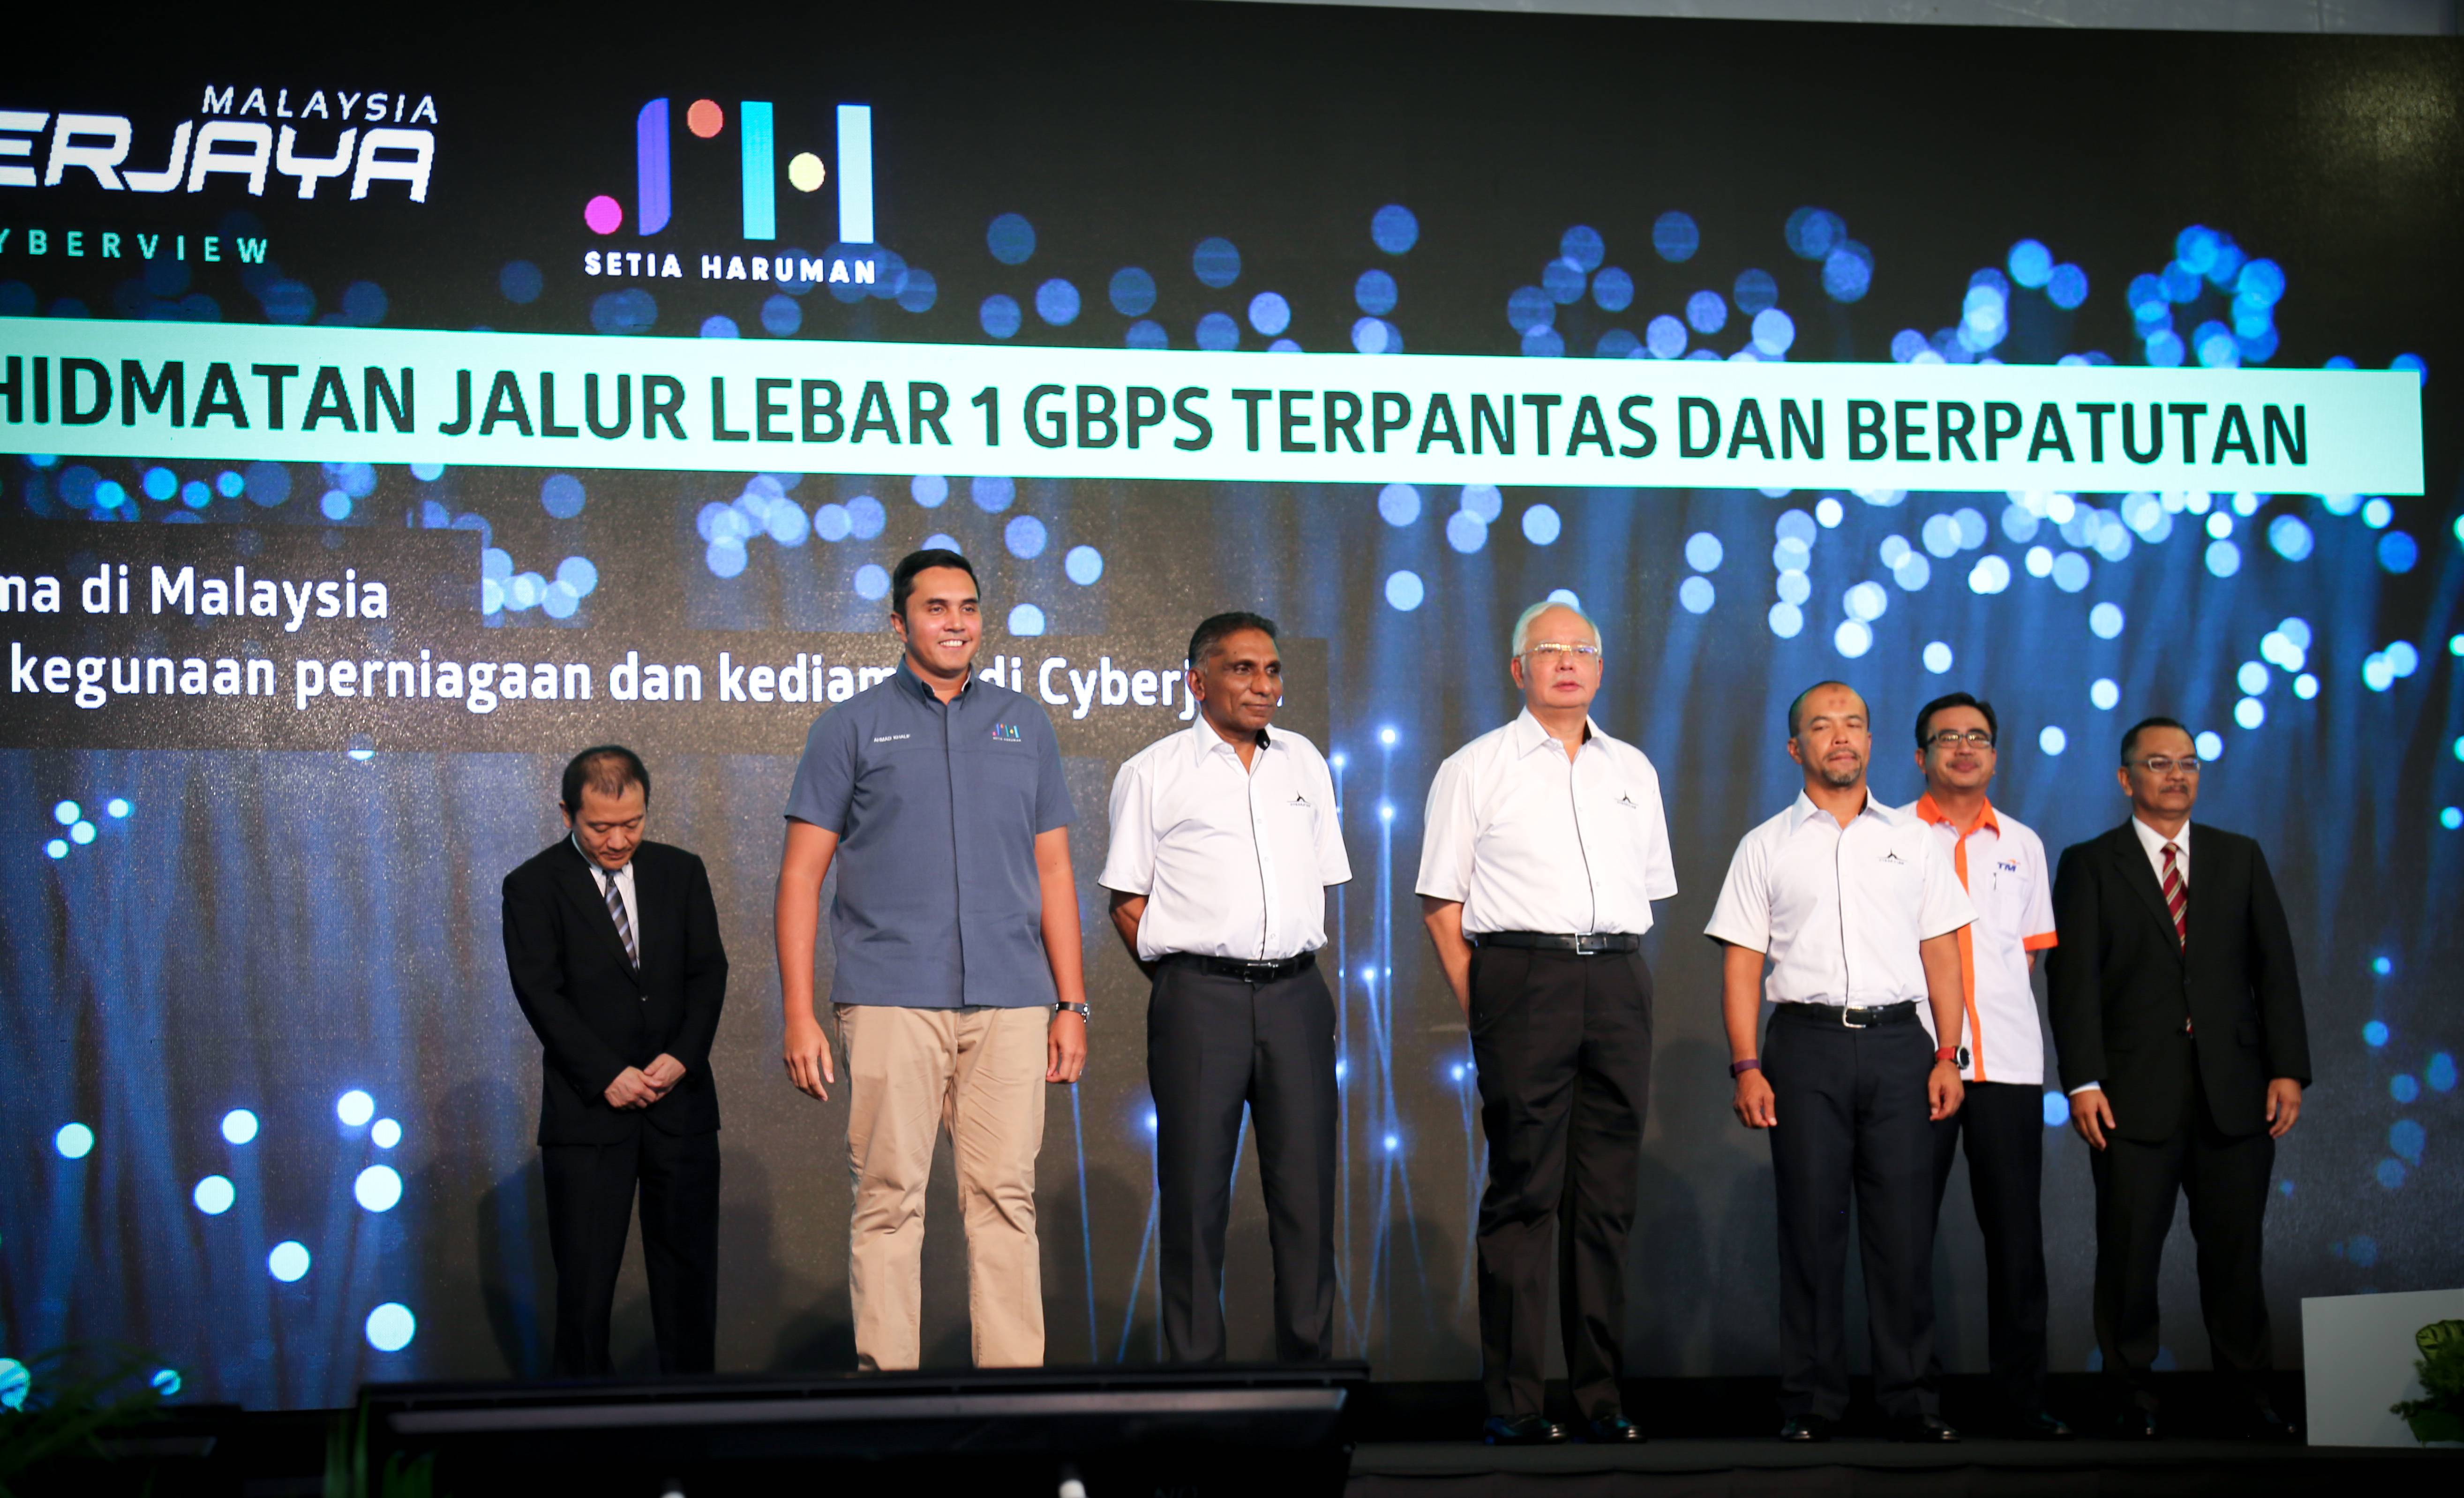 Announcement of the launch of Malaysia's first, competitive superfast 1Gbps broadband together with Ahmad Khalif, Tan Sri Irwan Serigar, Dato' Sri Najib and Dato' Faris Yahaya (from left to right).